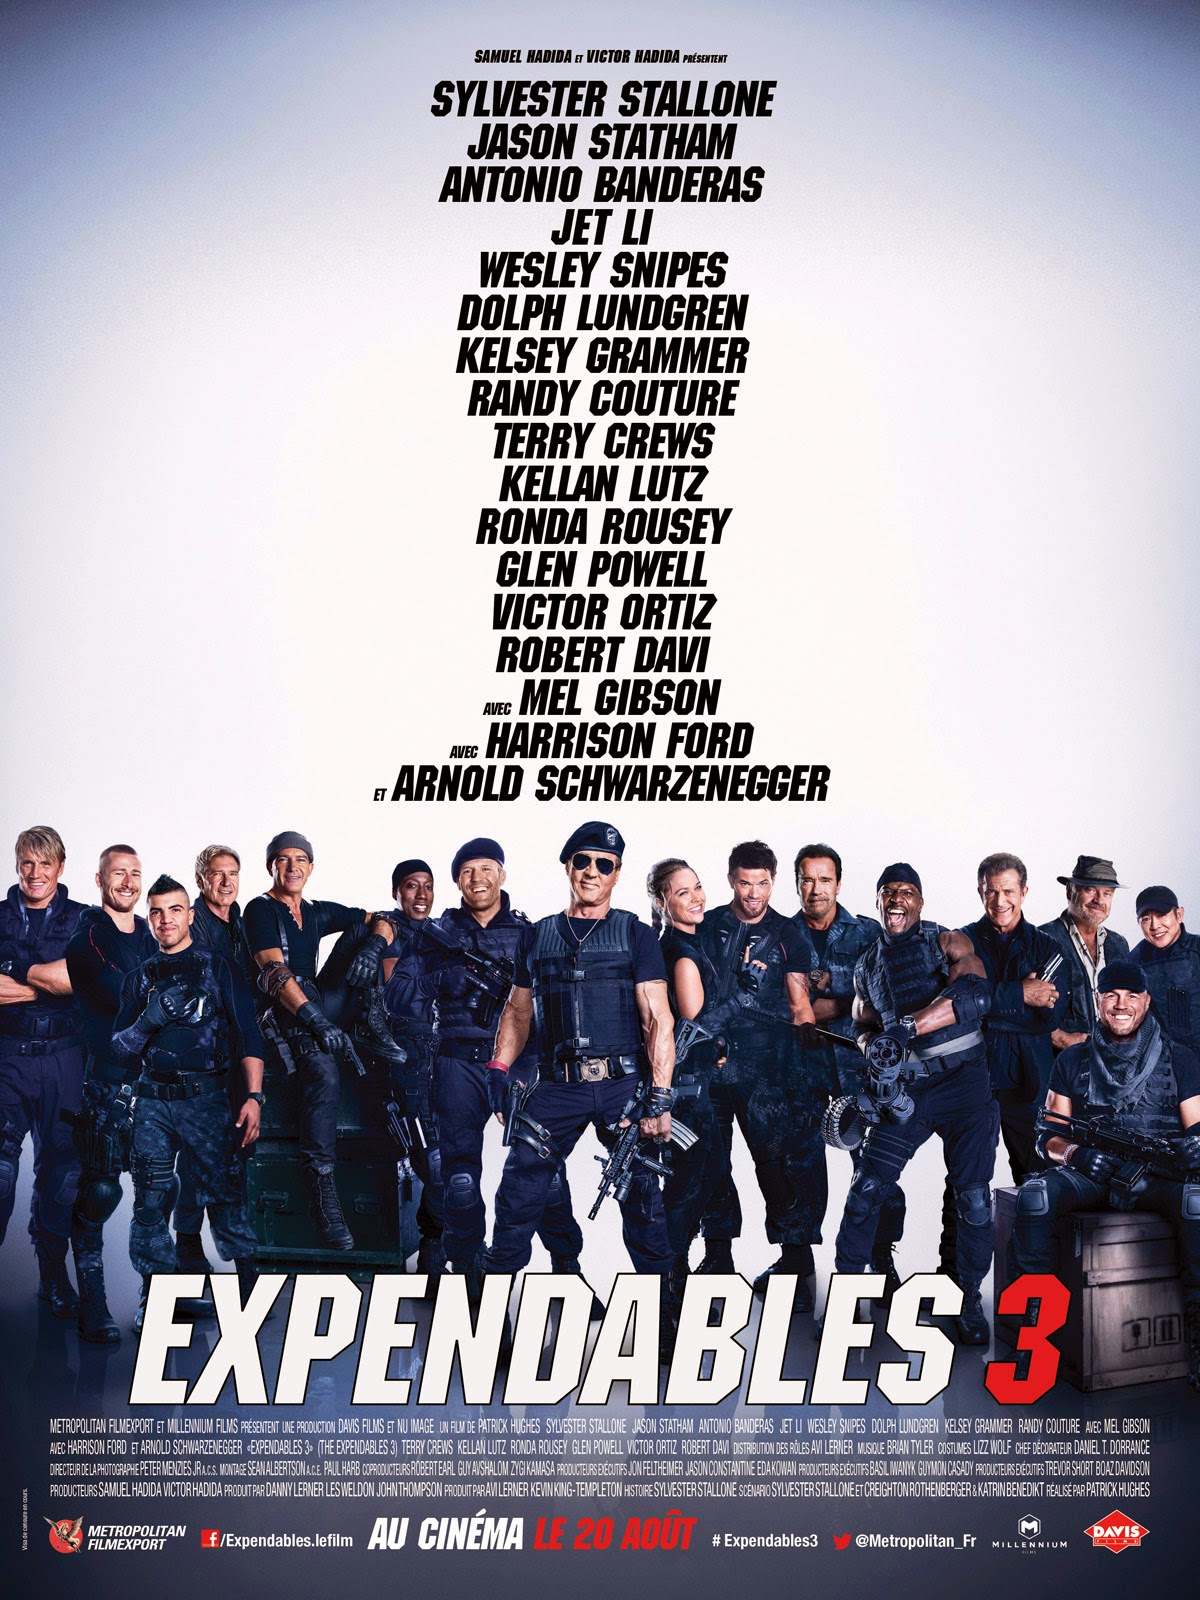 http://fuckingcinephiles.blogspot.fr/2014/08/critique-expendables-3.html